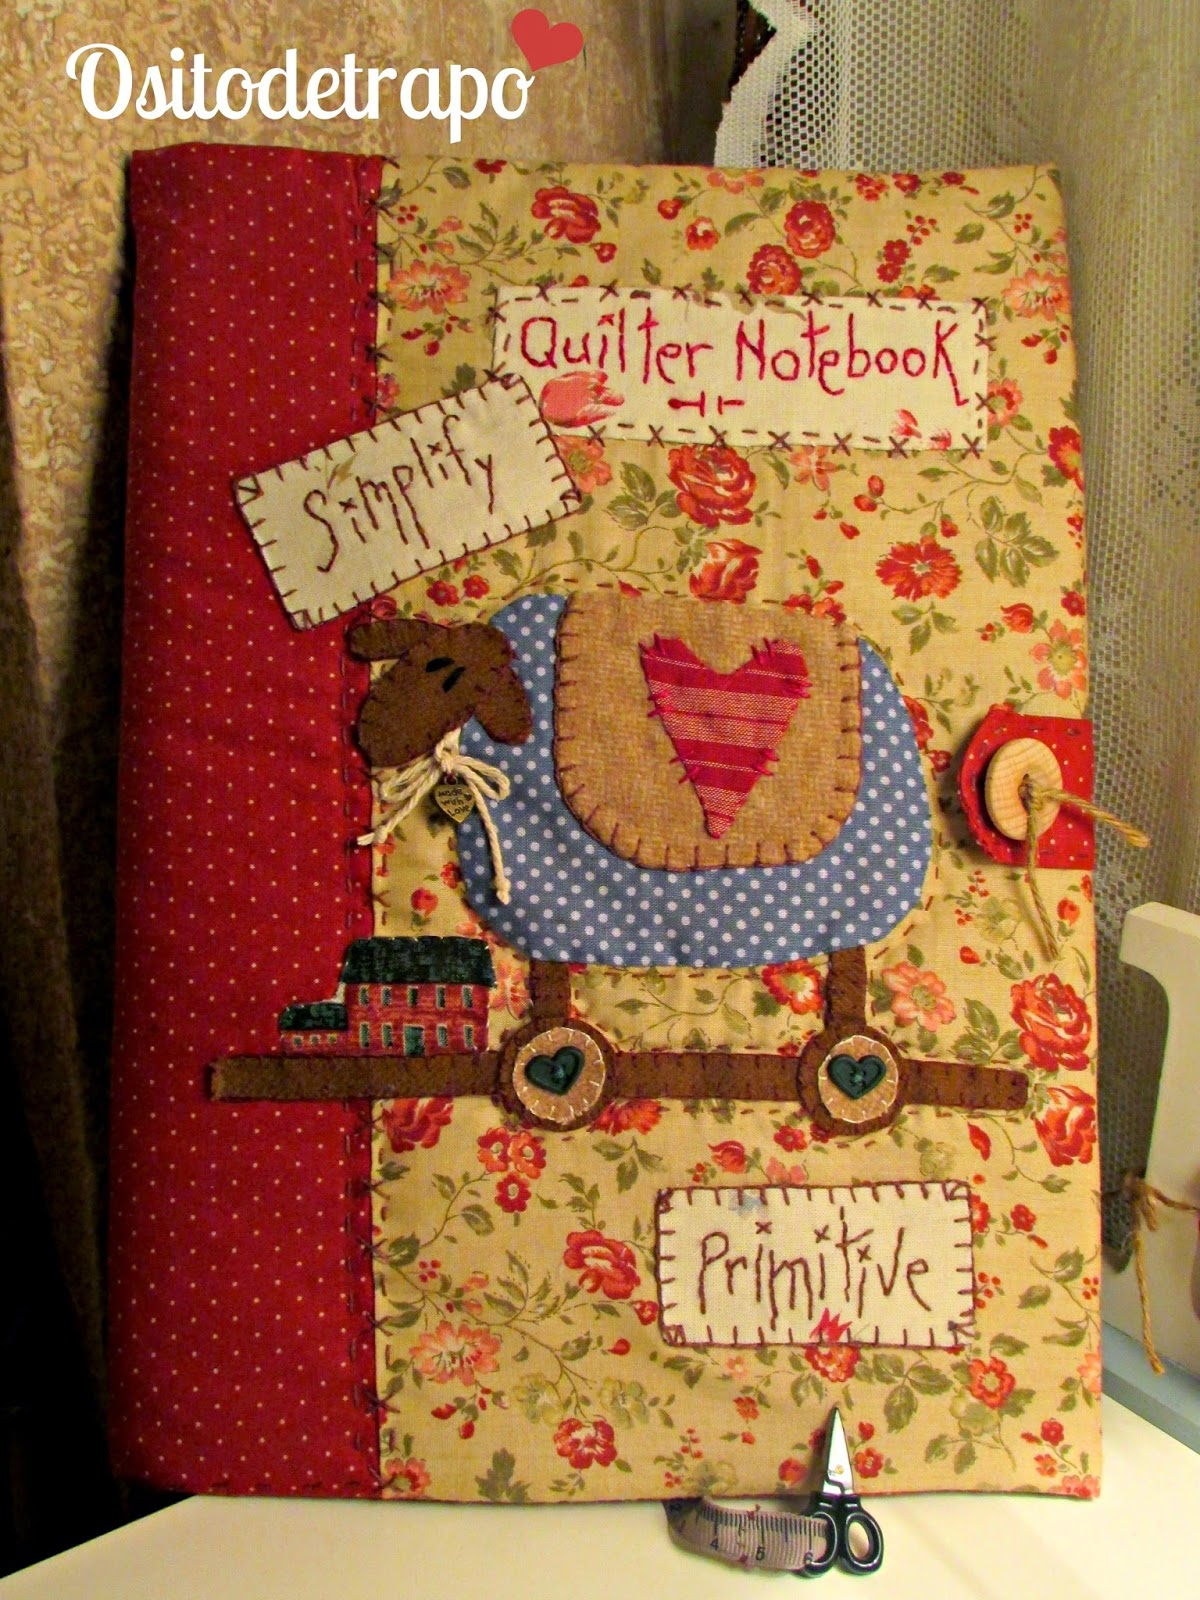 Quilter notebook